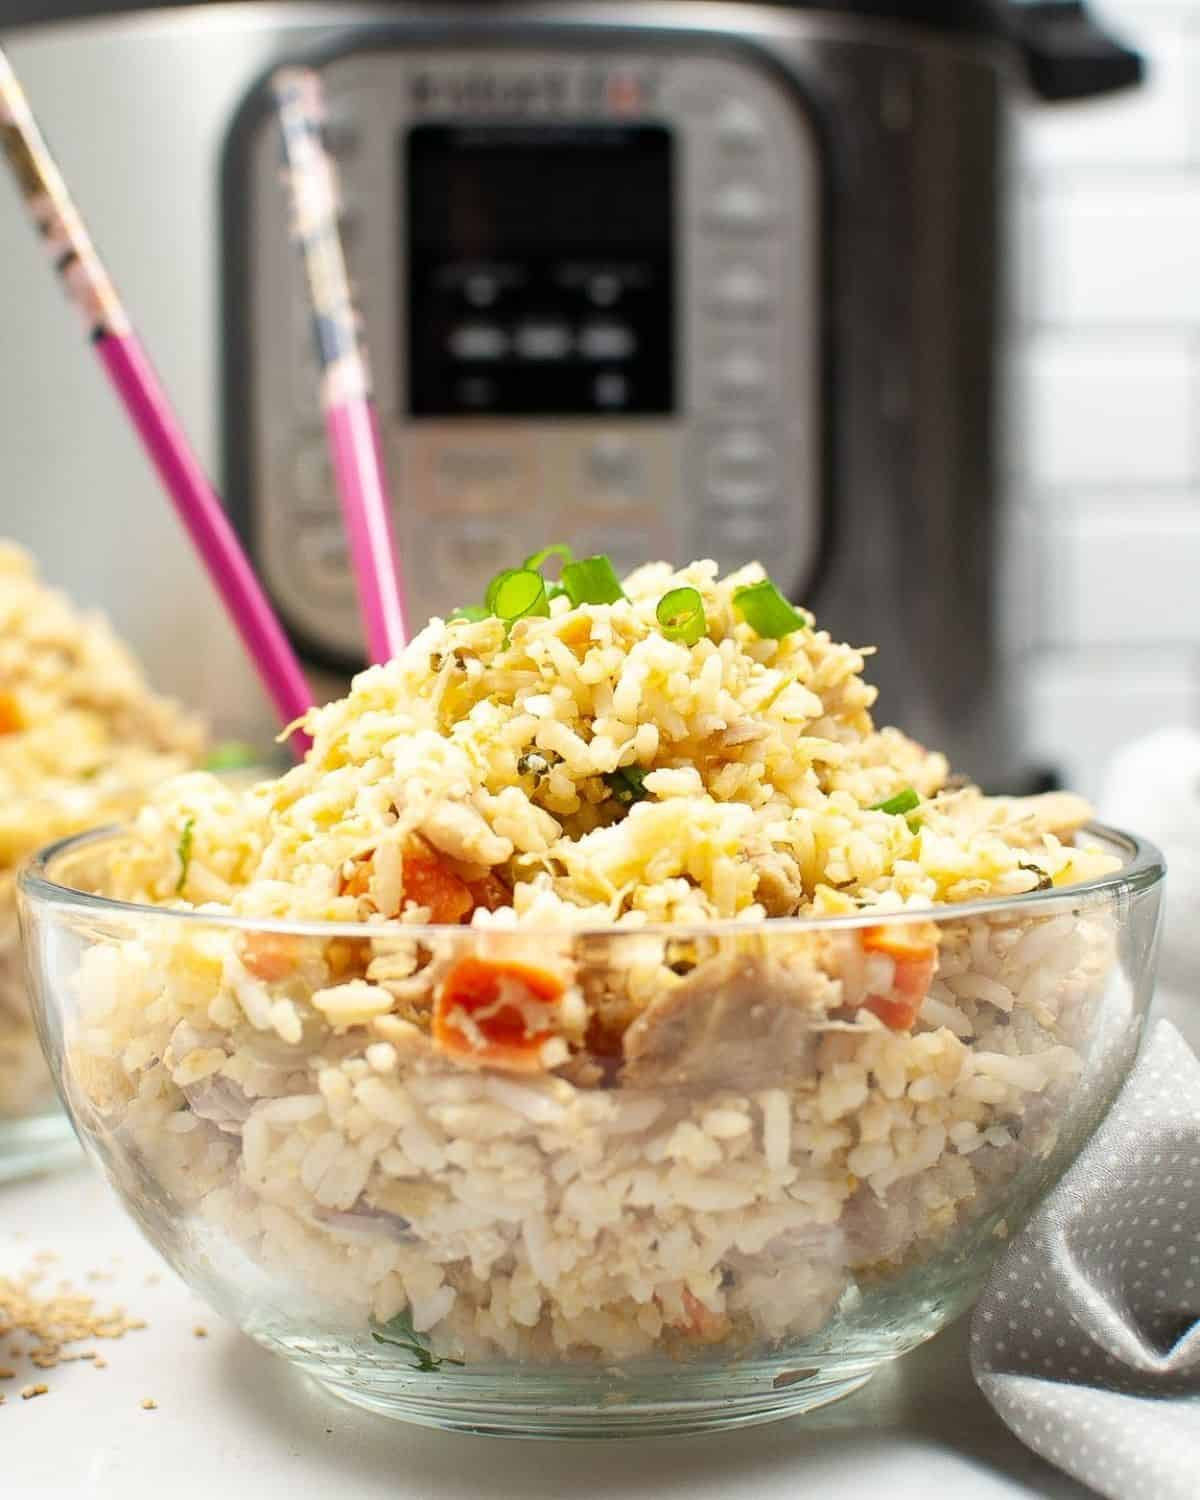 A glass bowl of fried rice, chicken , and veggies in front of an Instant Pot